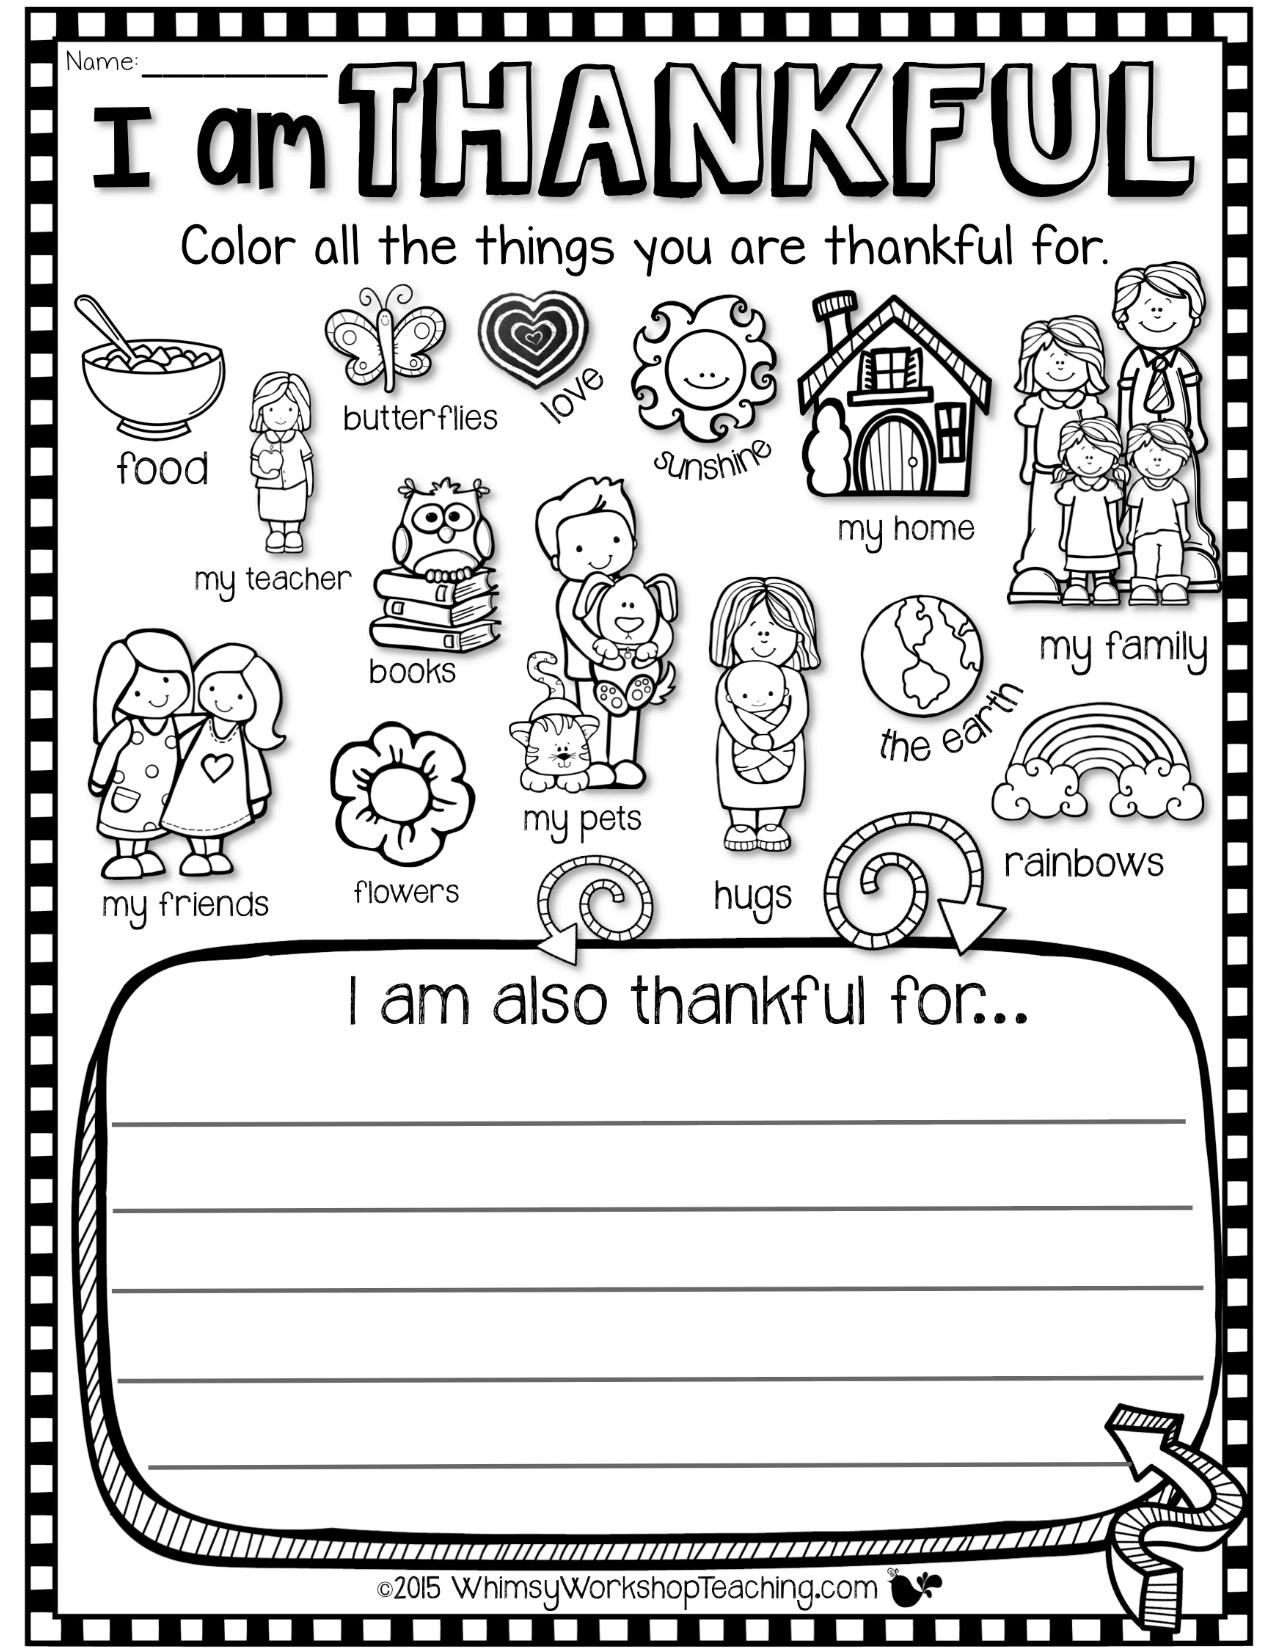 Another Thanksgiving Coloring Sheet